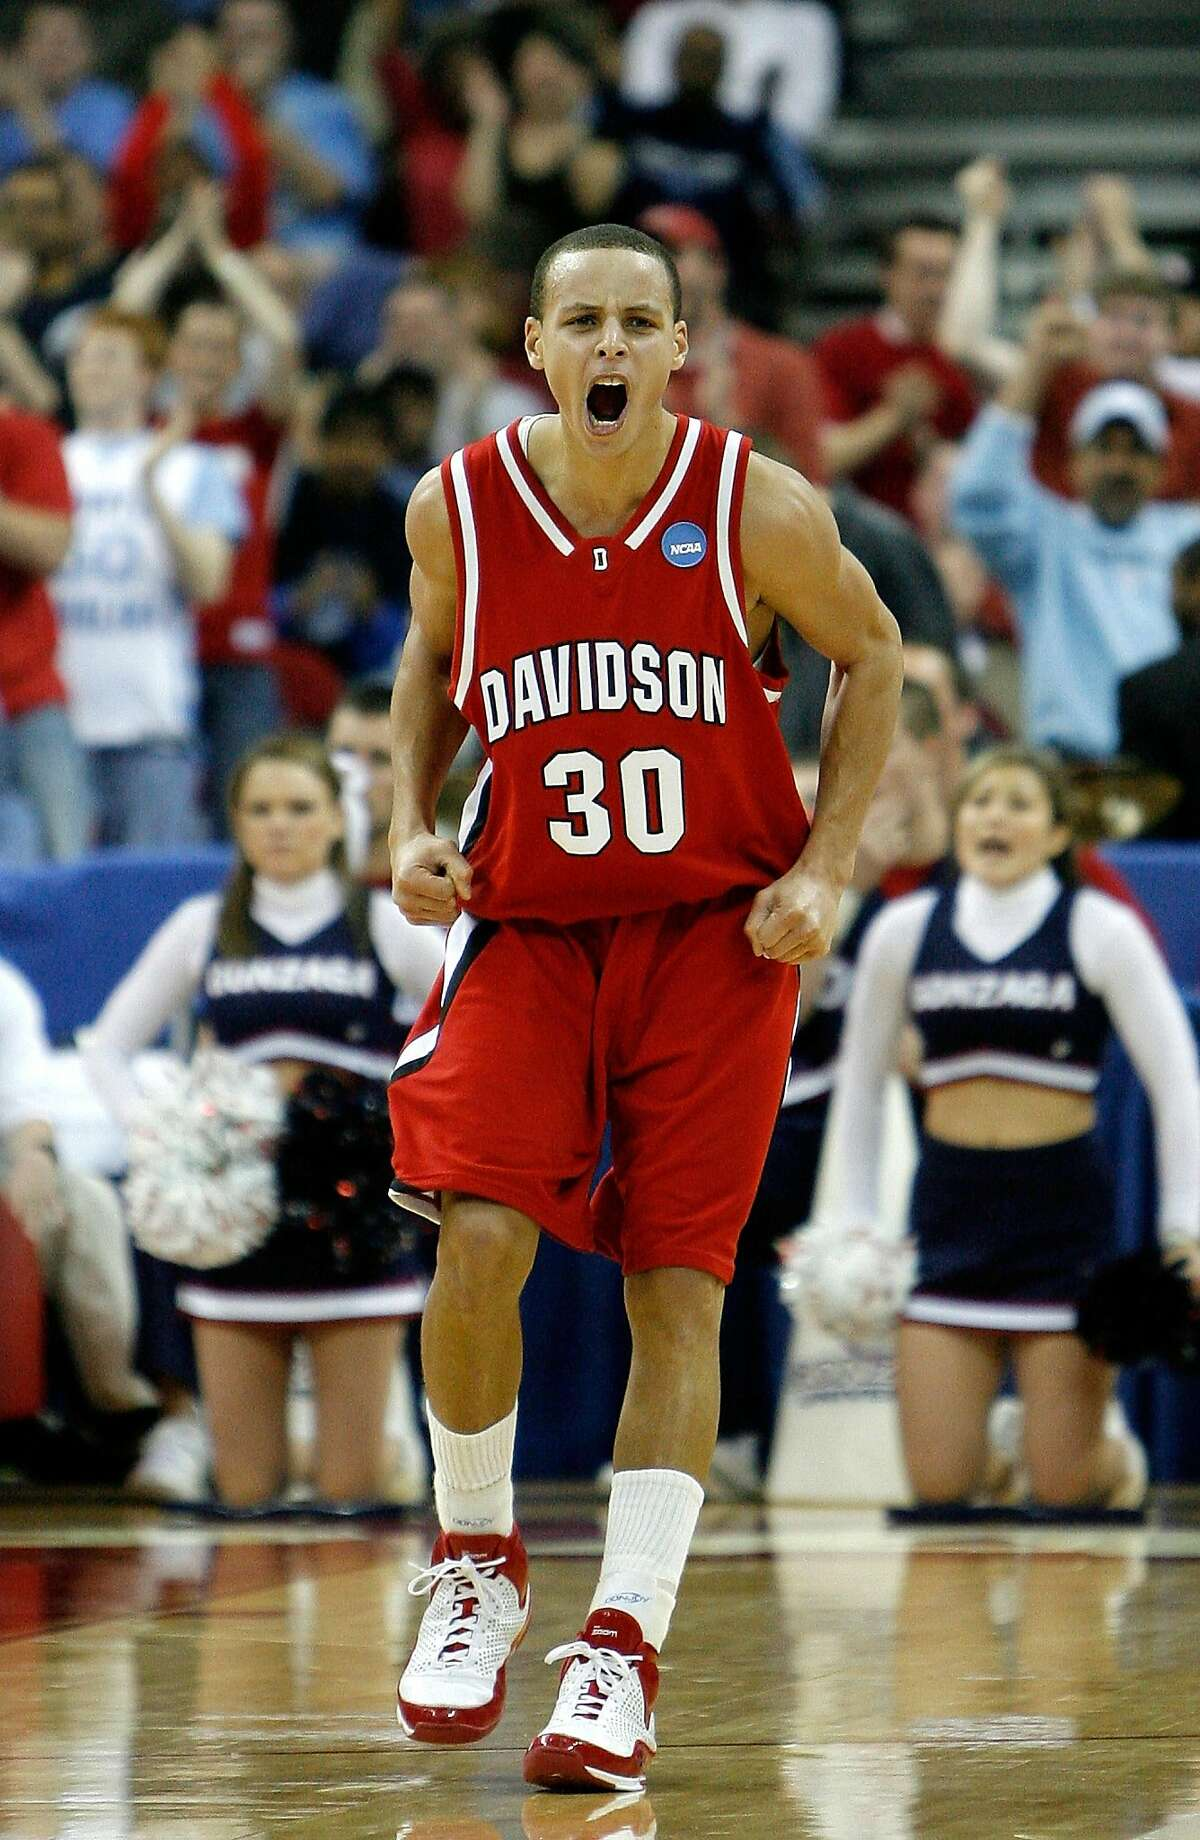 RALEIGH, NC - MARCH 21: Stephen Curry #30 of the Davidson Wildcats celebrates after making a basket against the Gonzaga Bulldogs during the 1st round of the 2008 NCAA Men's Basketball Tournament on March 21, 2008 at RBC Center in Raleigh, North Carolina. (Photo by Streeter Lecka/Getty Images)